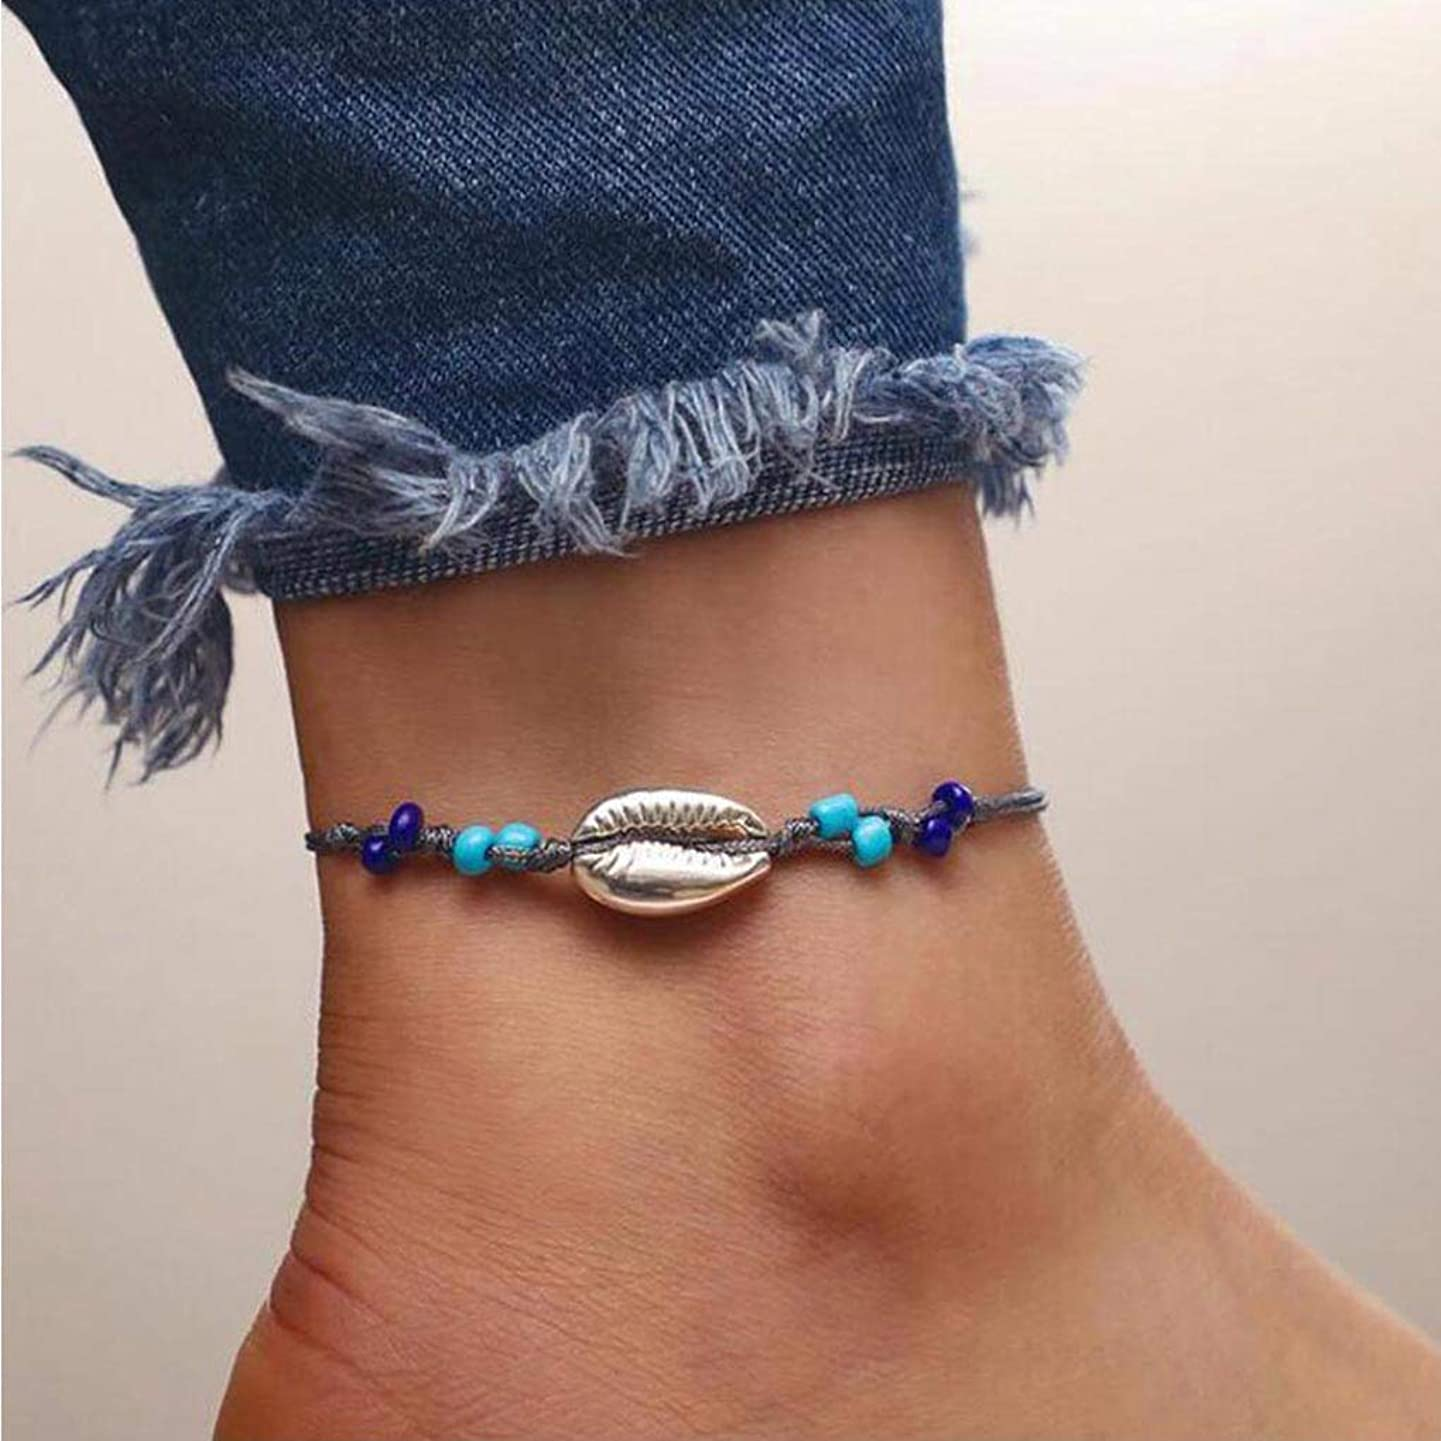 Yalice Boho Conch Shell Anklet Silver Cowrie Rope Ankle Bracelet Beach Foot Chain for Women and Girls